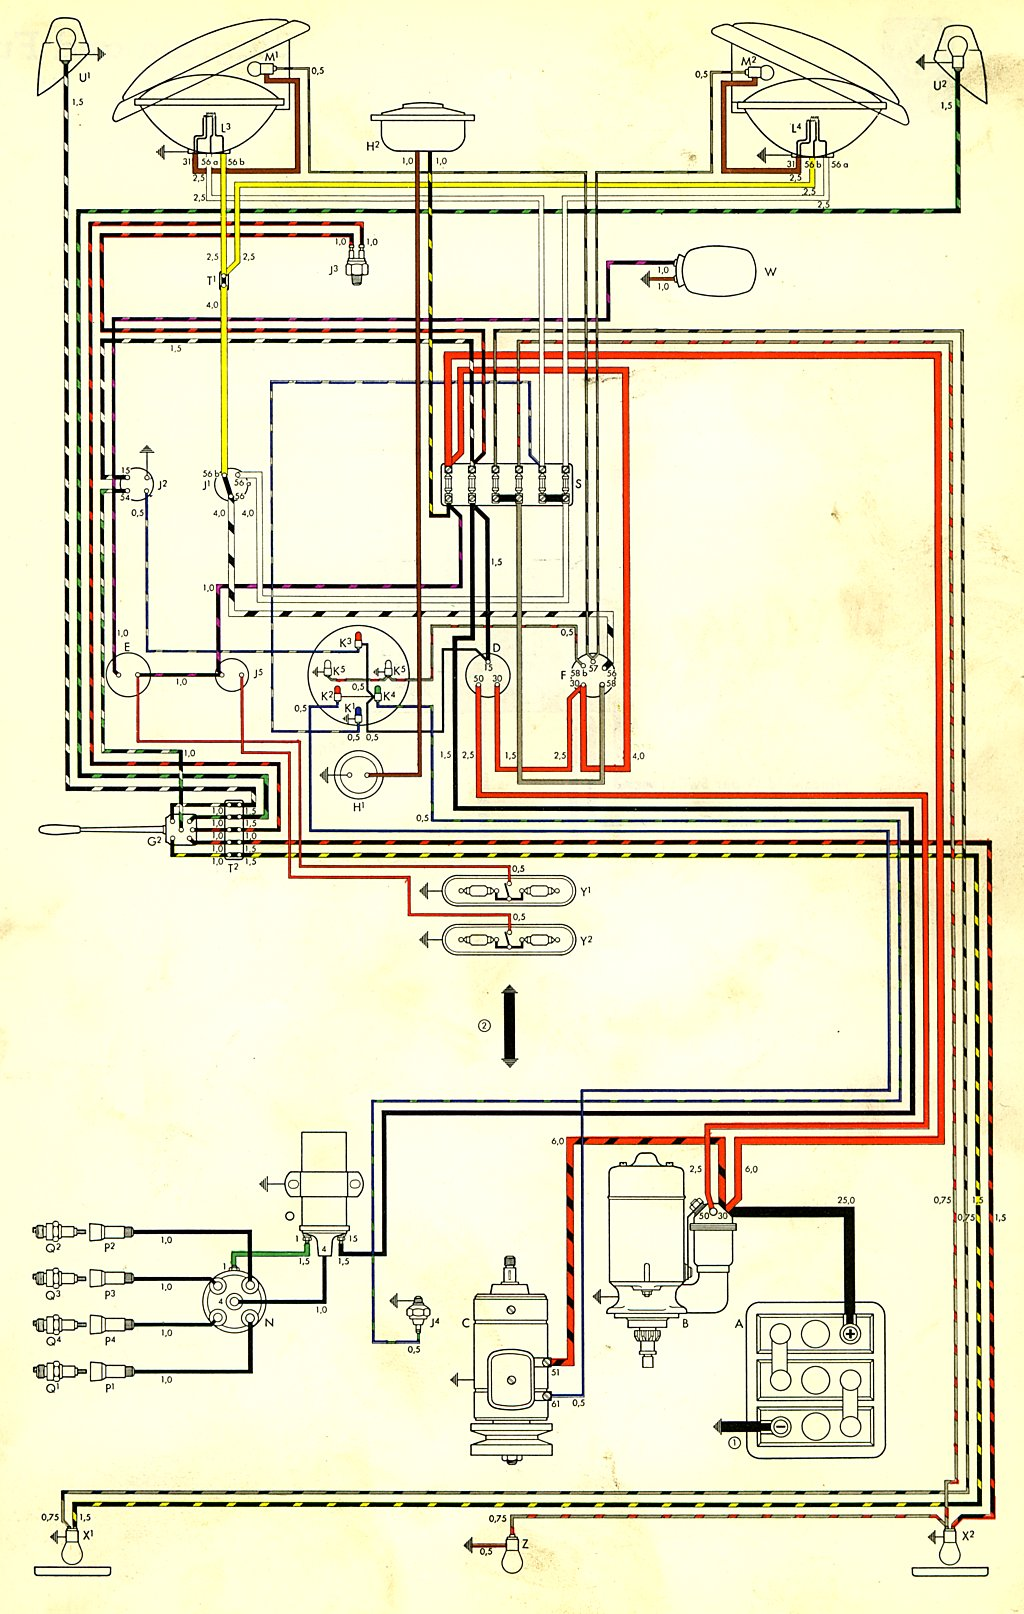 1959 Chrysler Wiring Diagram Layout Diagrams Car Stereo Vw U2022 Rh Laurafinlay Co Uk 2004 Town And Country